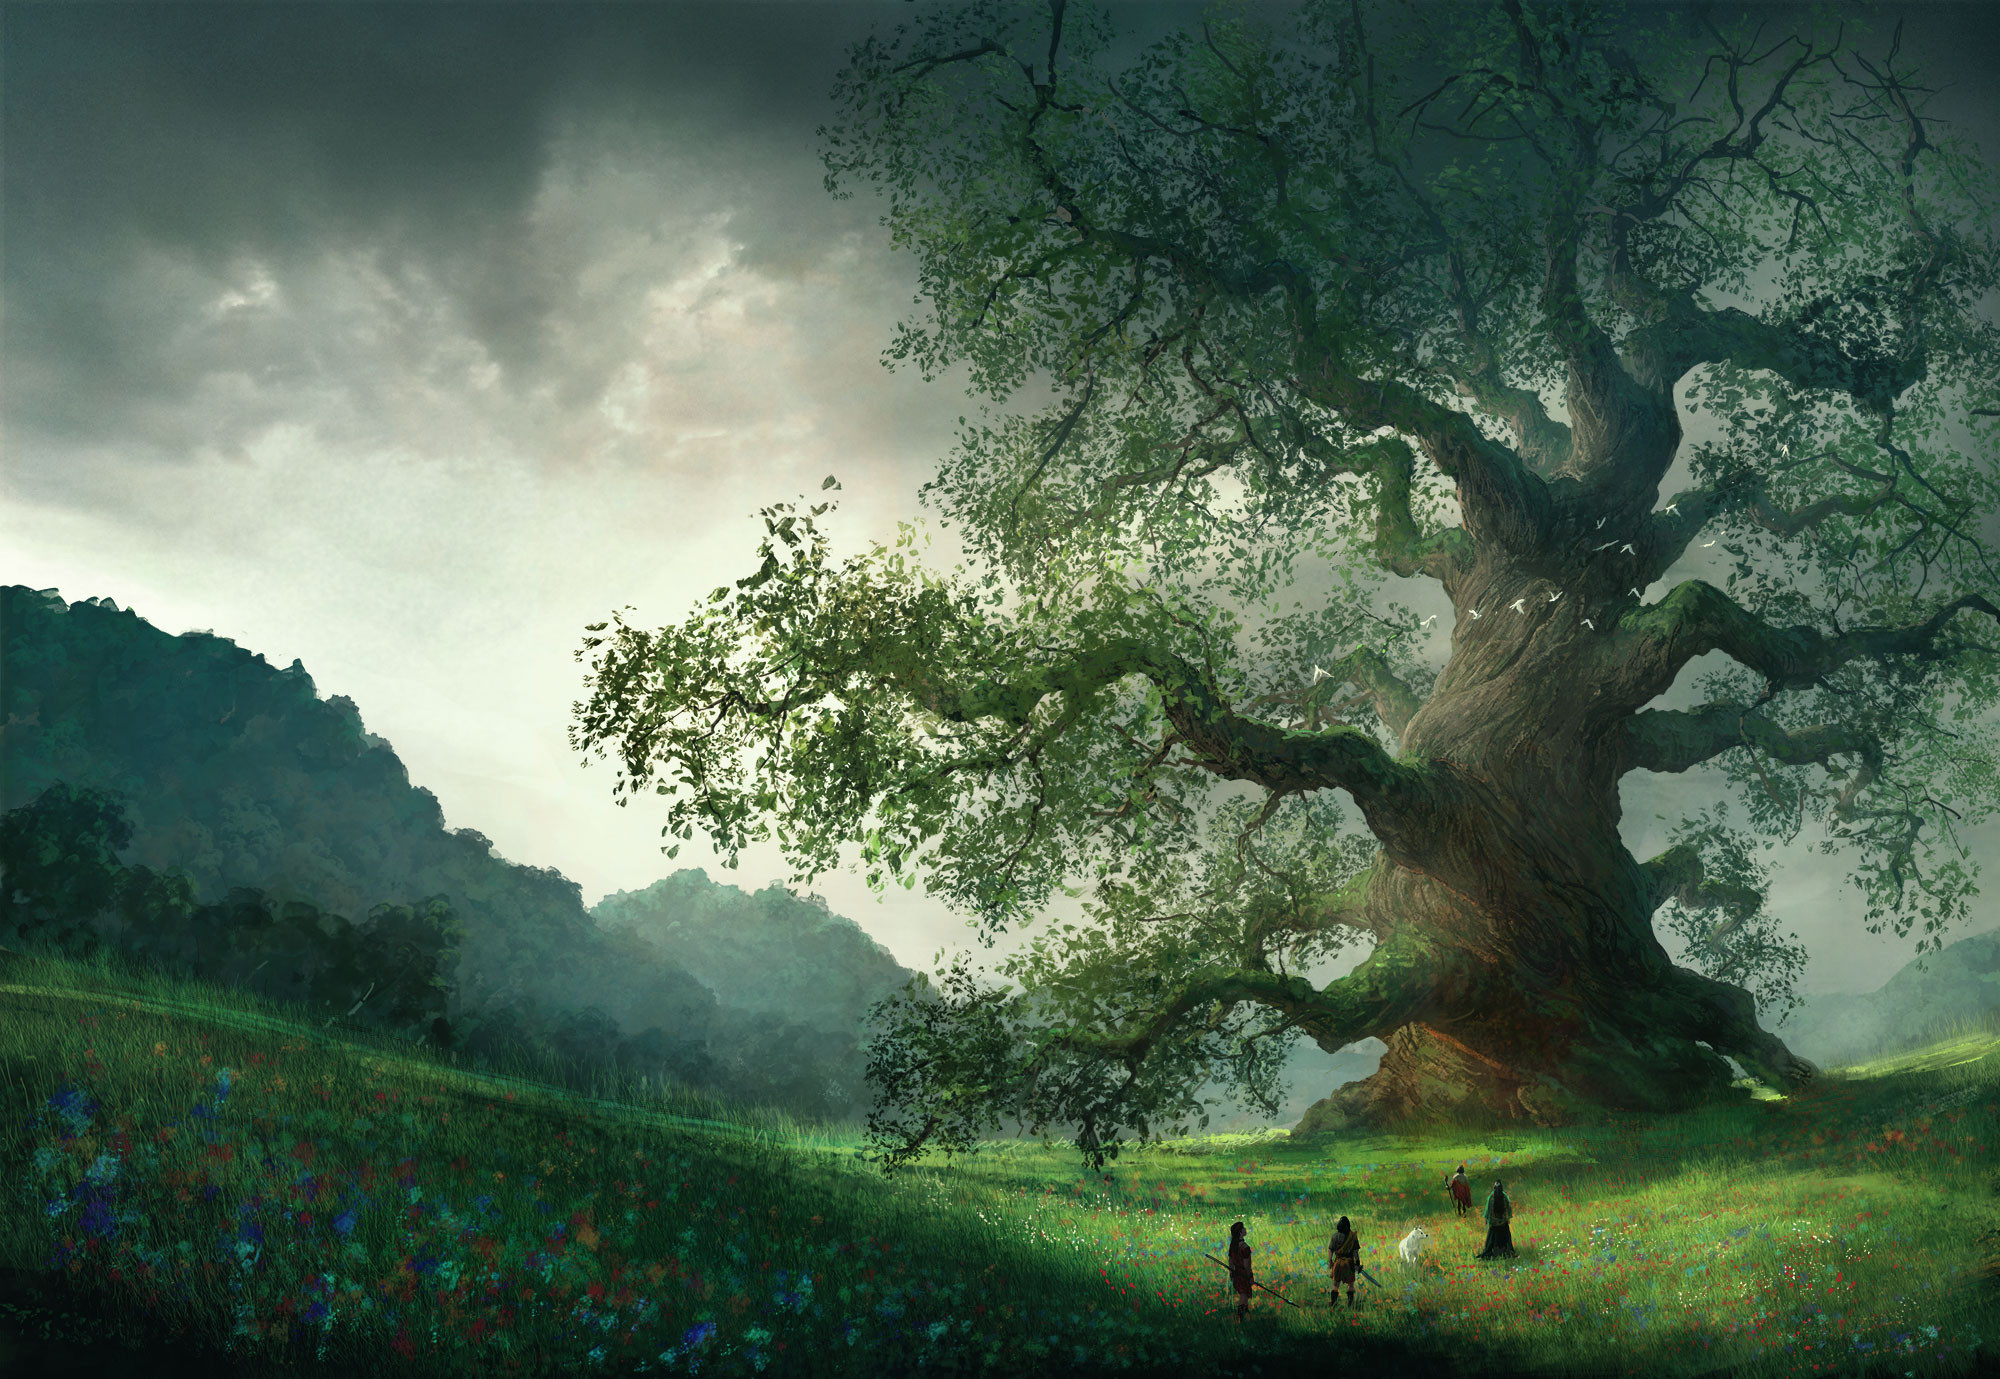 A large tree from the cover of Age of Myth